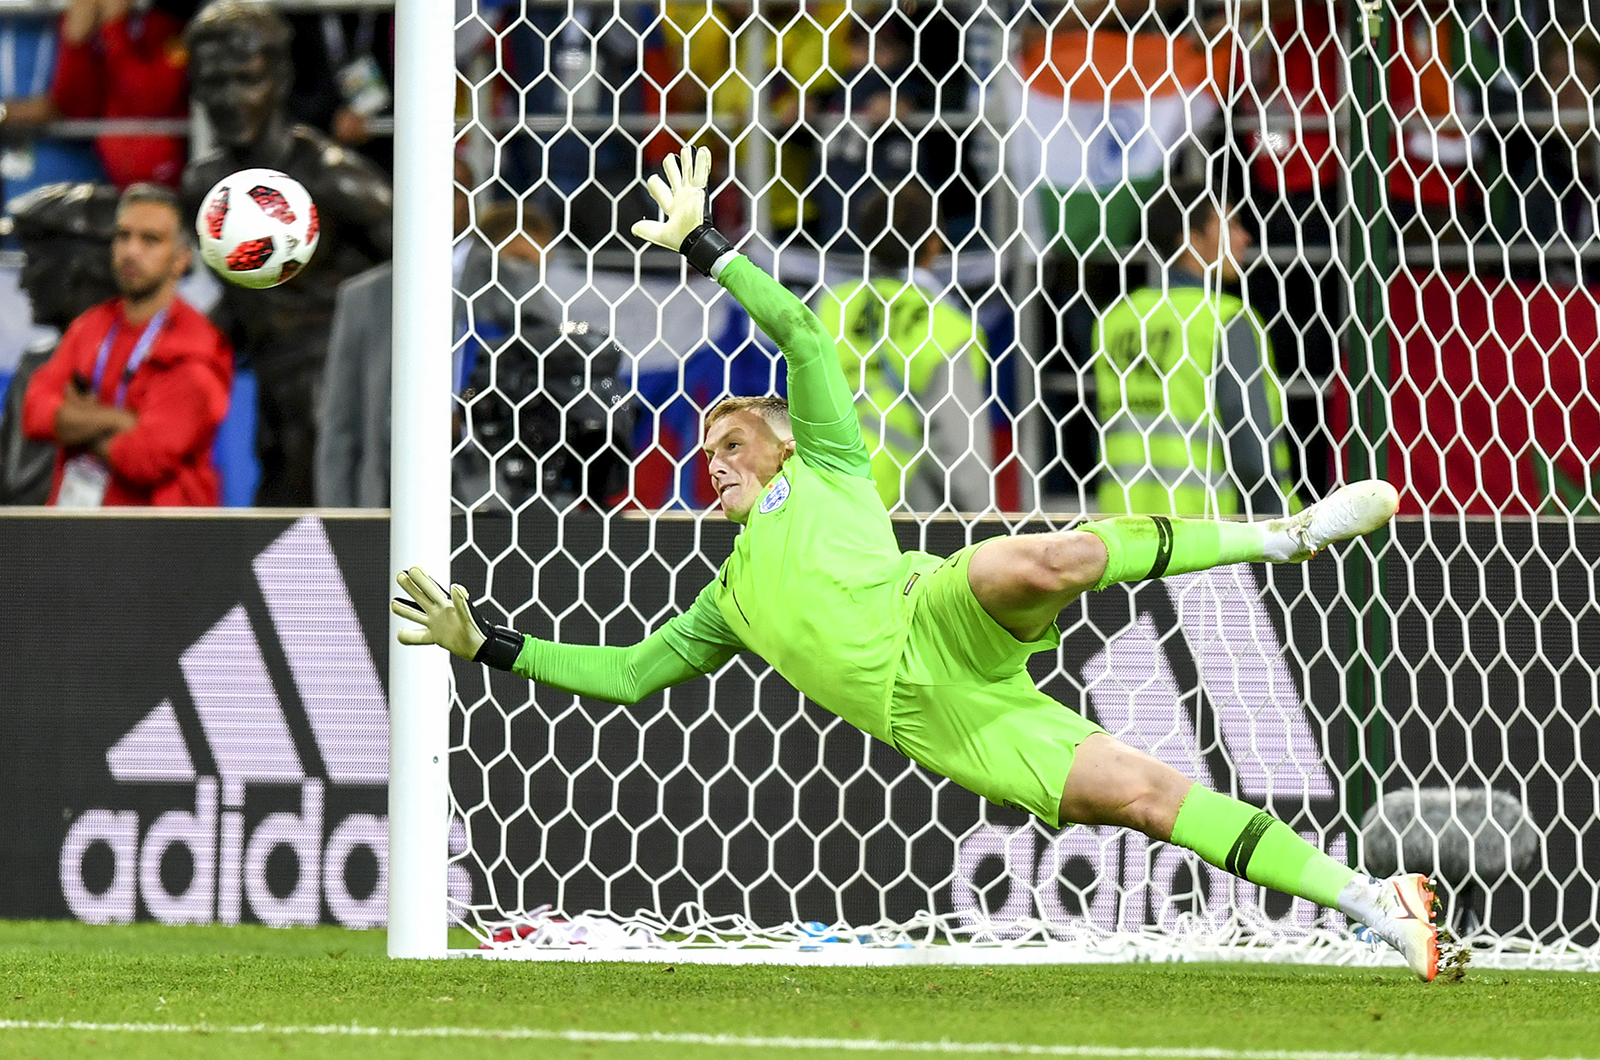 Jordan Pickford Saves Penalty for England at World Cup 2018